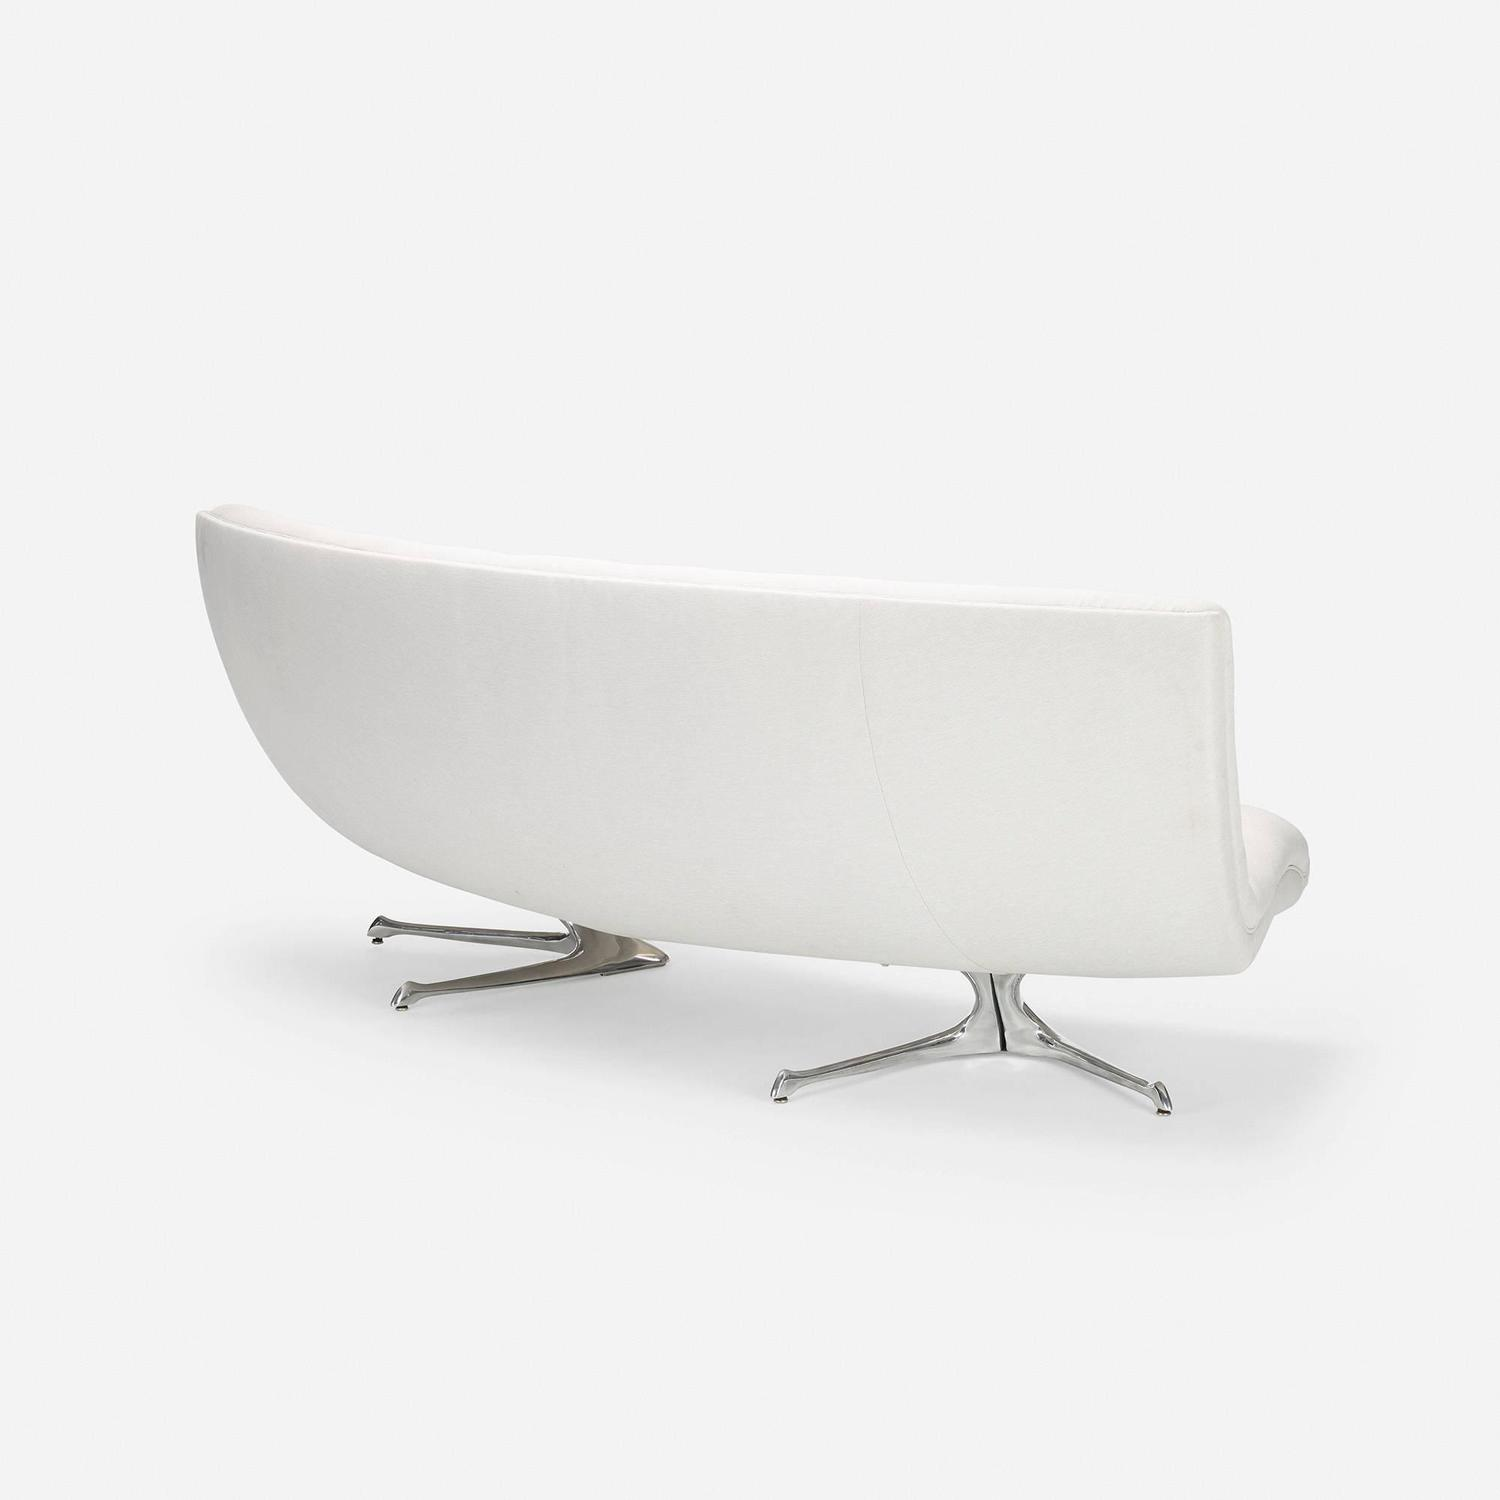 Unicorn Sofa By Vladimir Kagan For Vladimir Kagan Designs